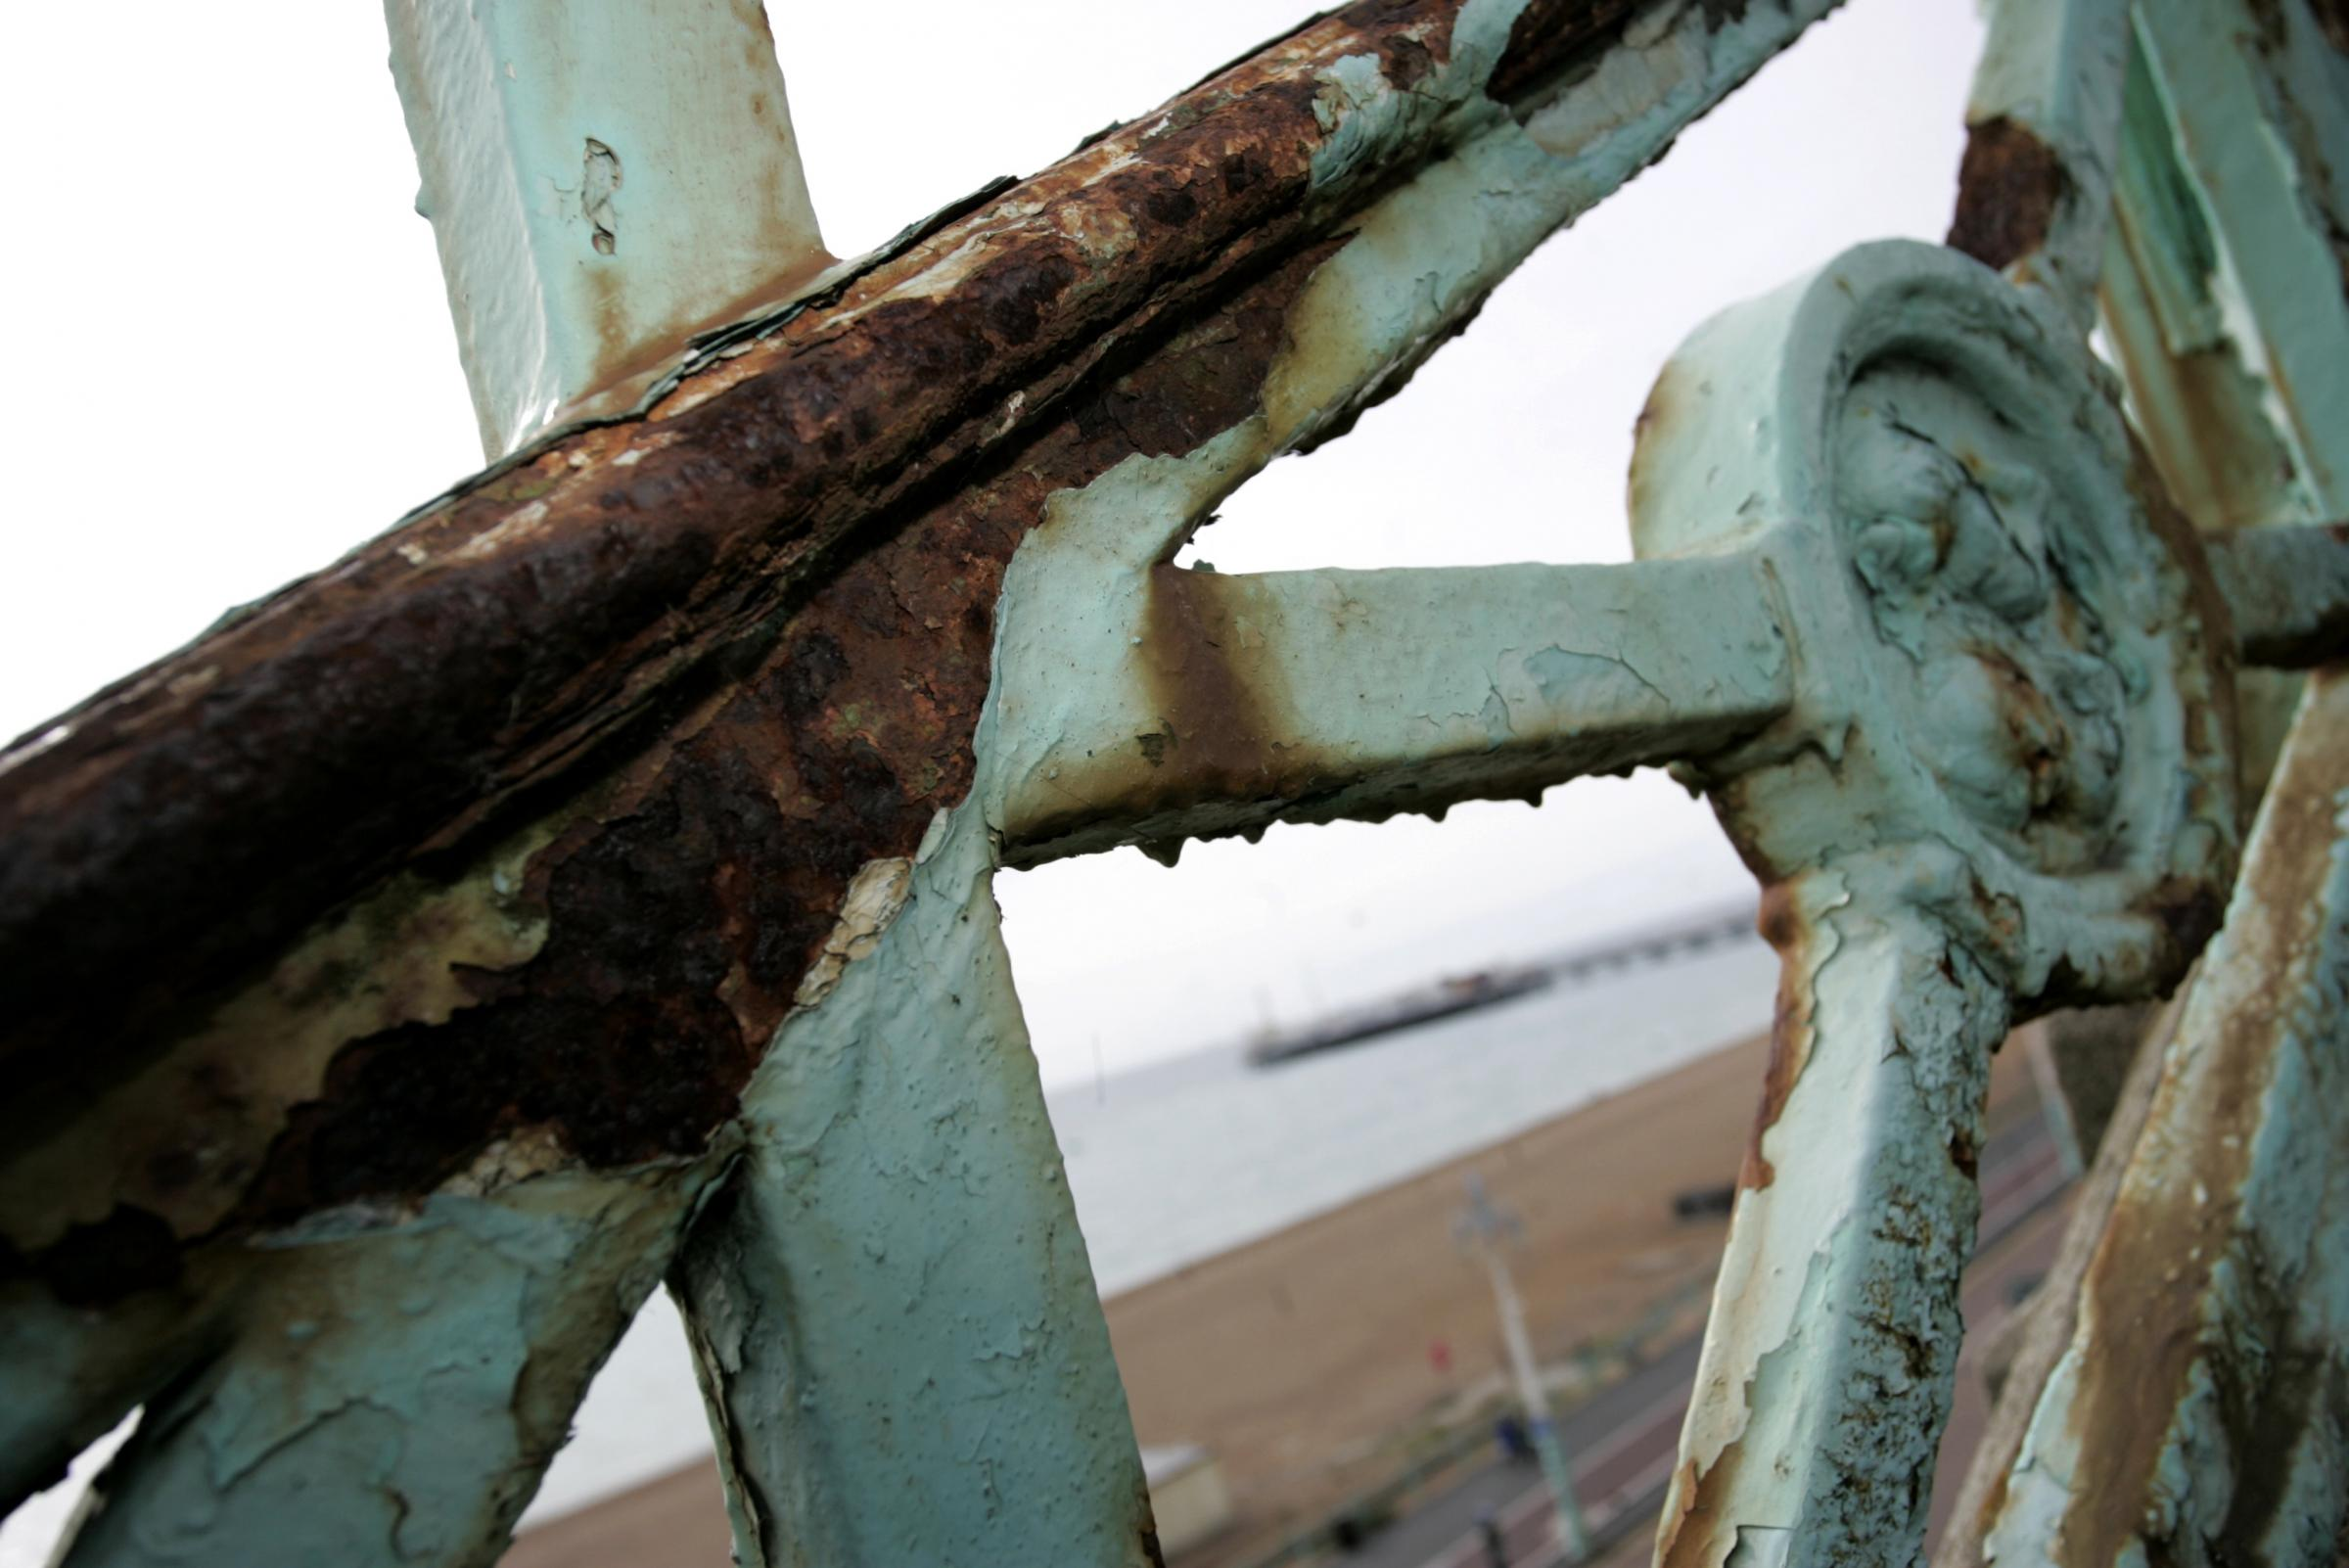 Brighton seafront could close if repair funds are not found